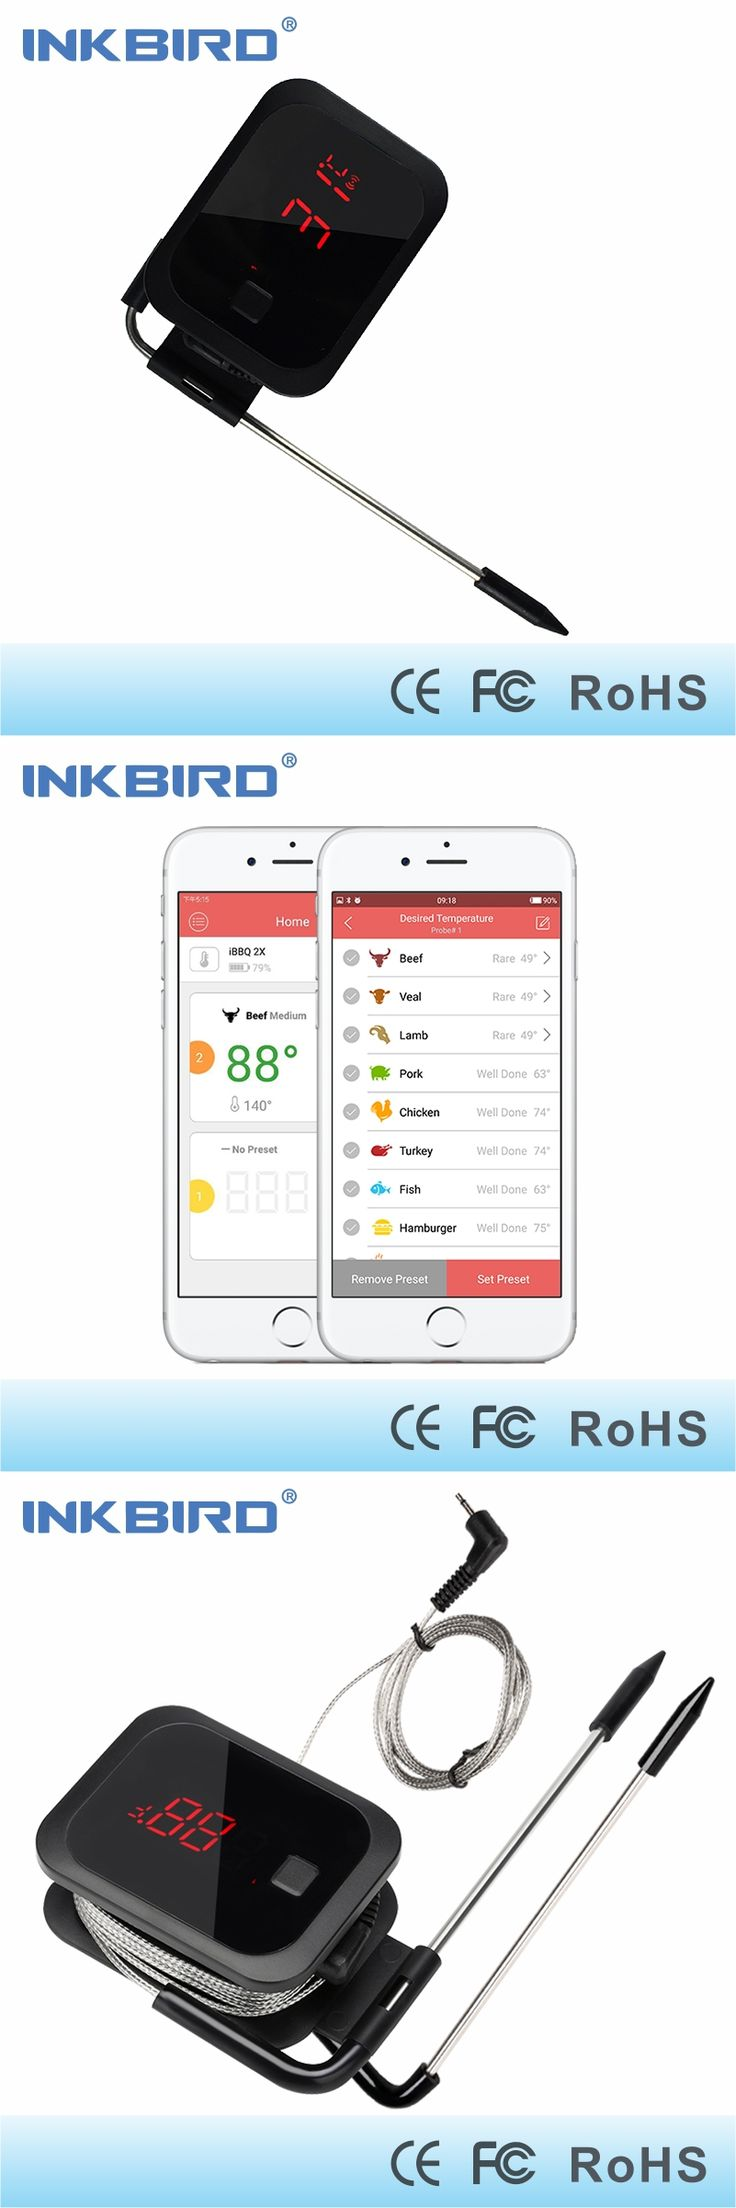 Inkbird Food Cooking Bluetooth Wireless BBQ Thermometer With Double Probes and Timer For Oven Meat Grill BBQ APP controlled